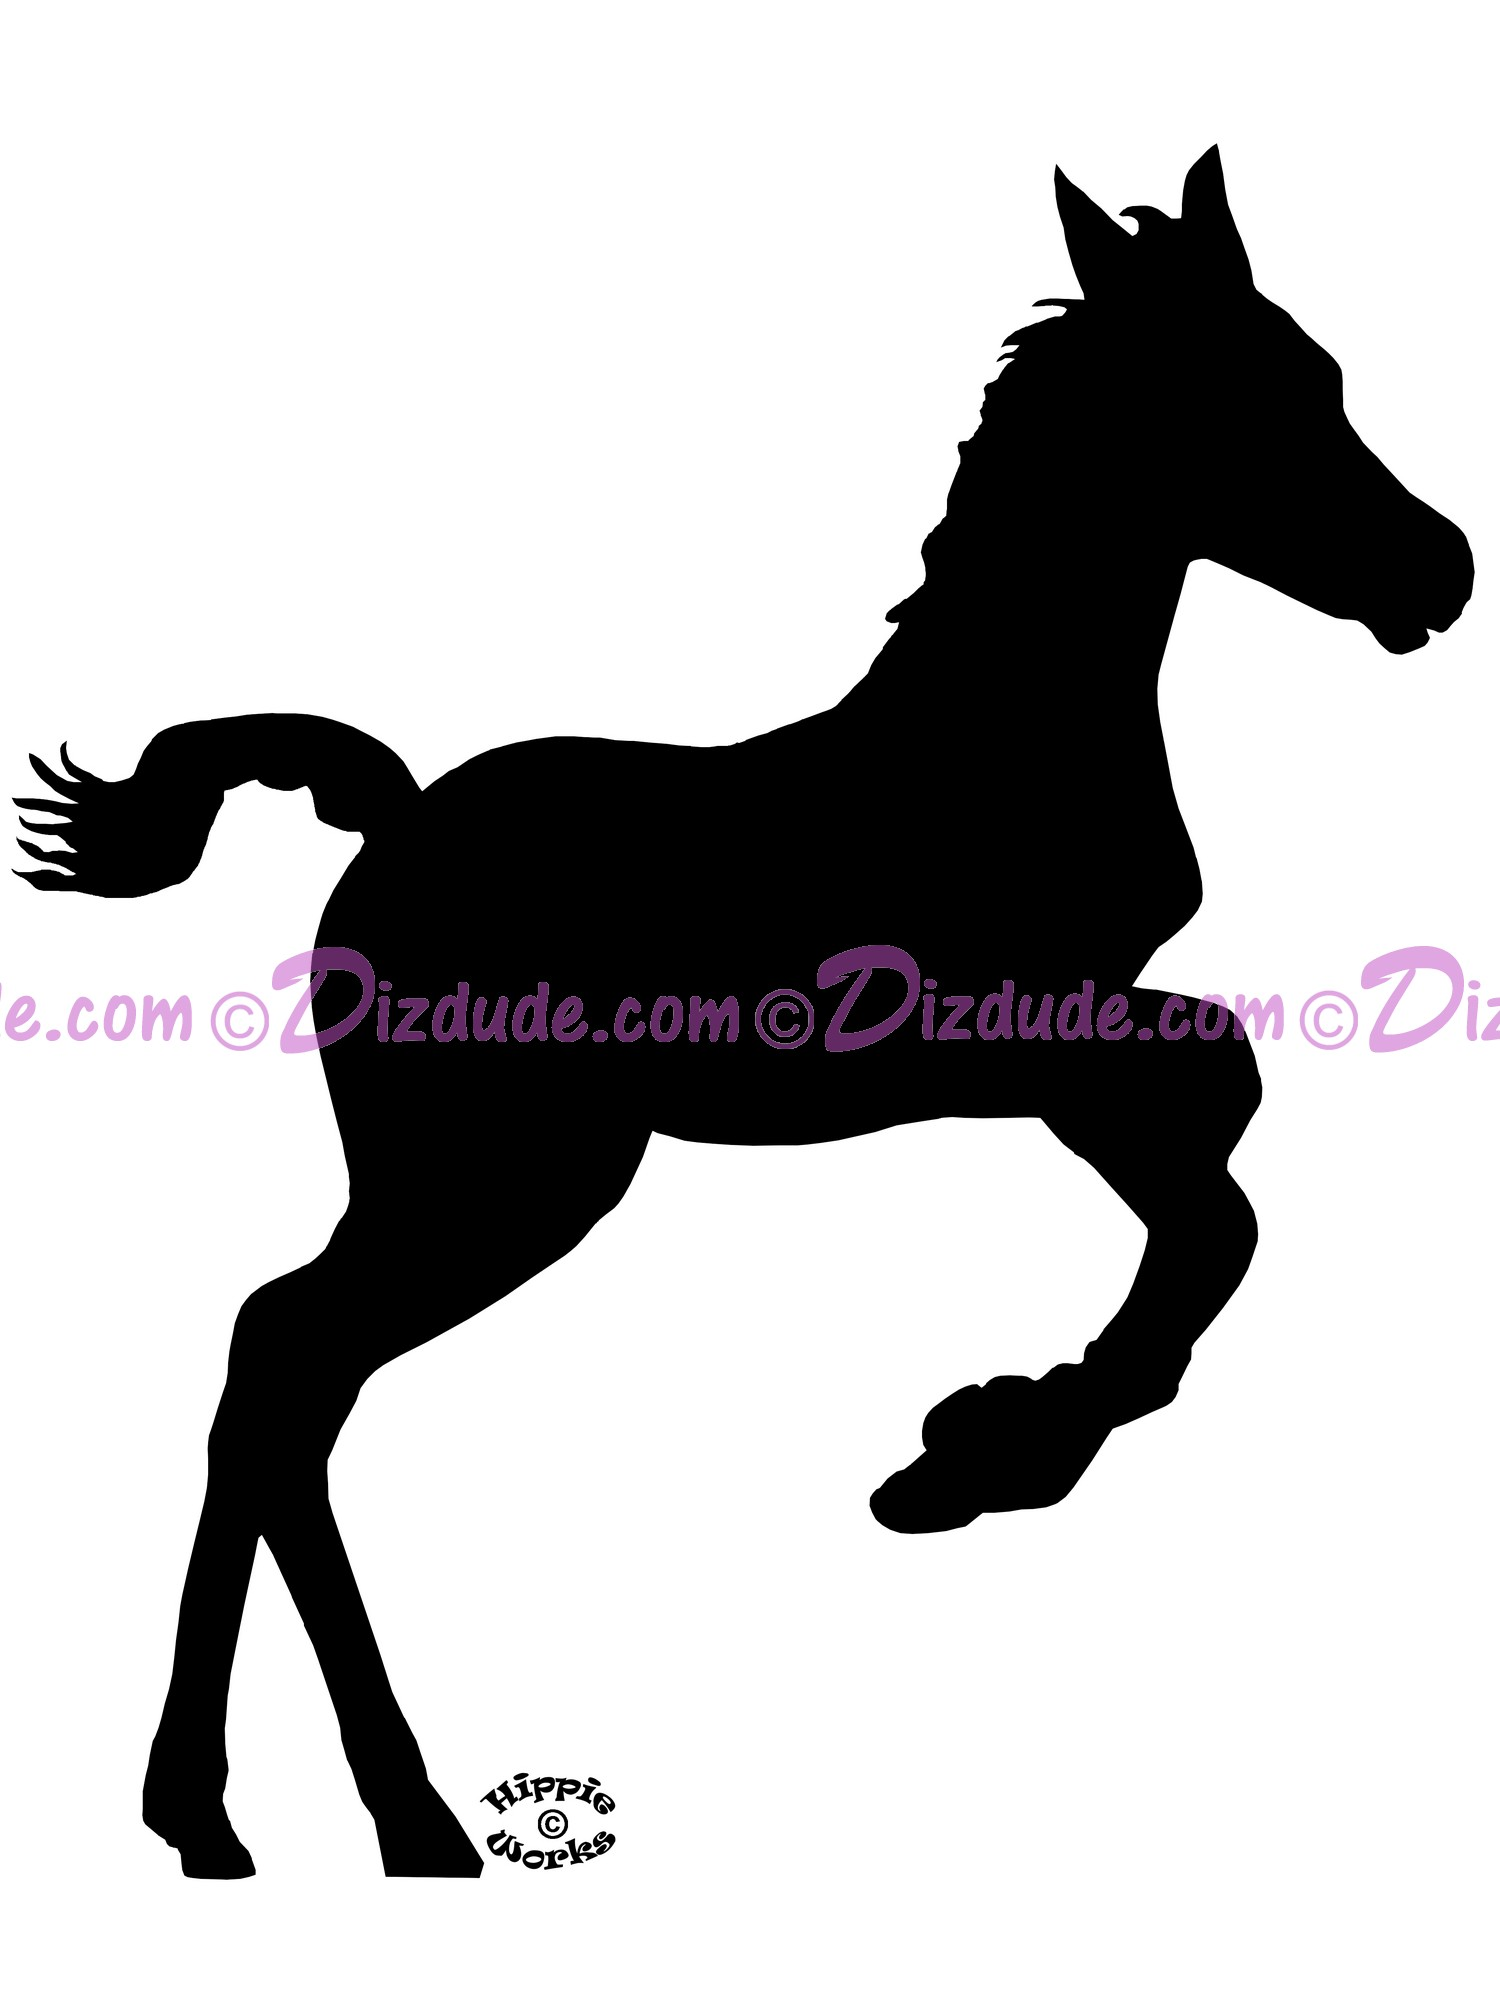 Silhouette Foal Bucking T-Shirt or Tank Top on White (Tshirt, T shirt or Tee) © Hippieworks